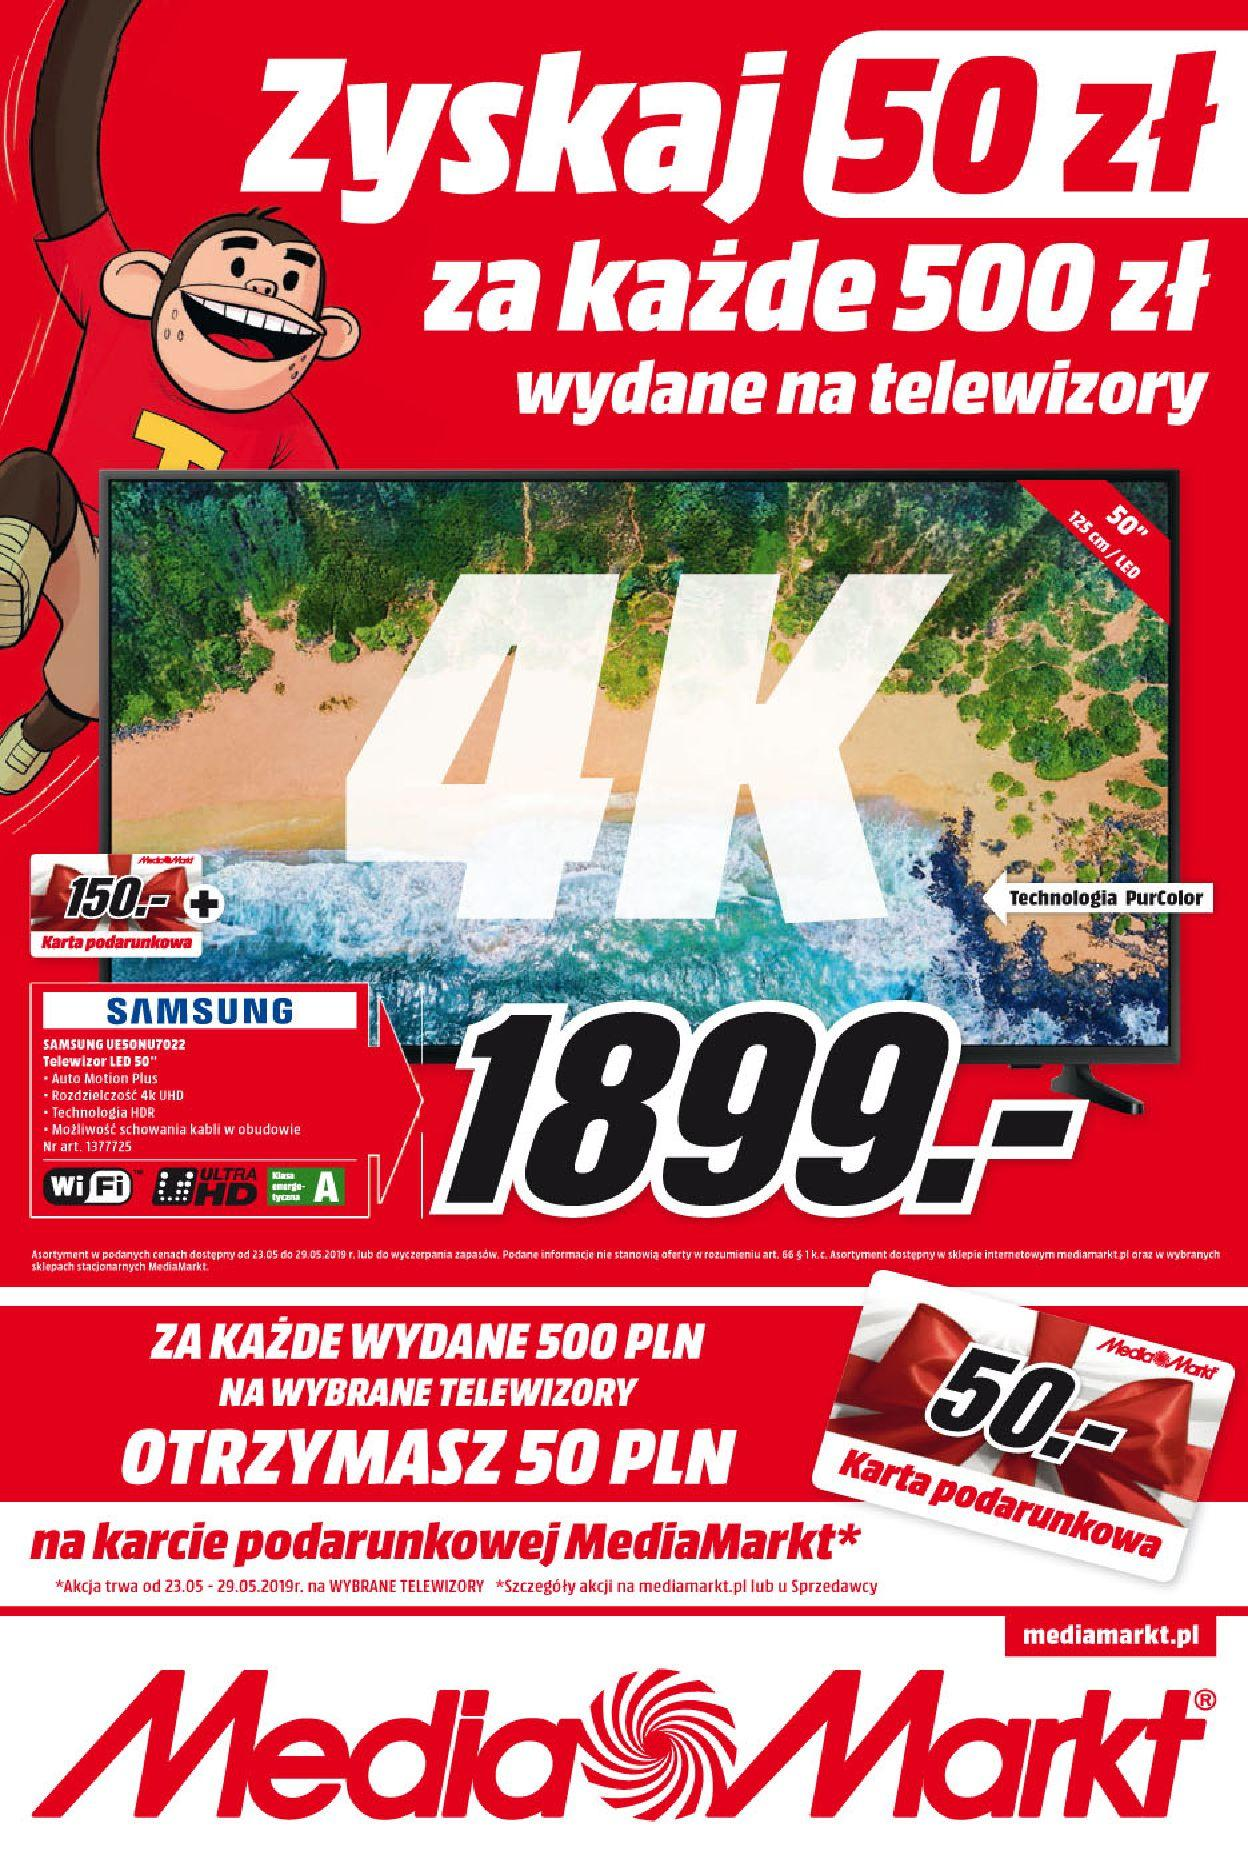 Gazetka promocyjna Media Markt do 29/05/2019 str.1